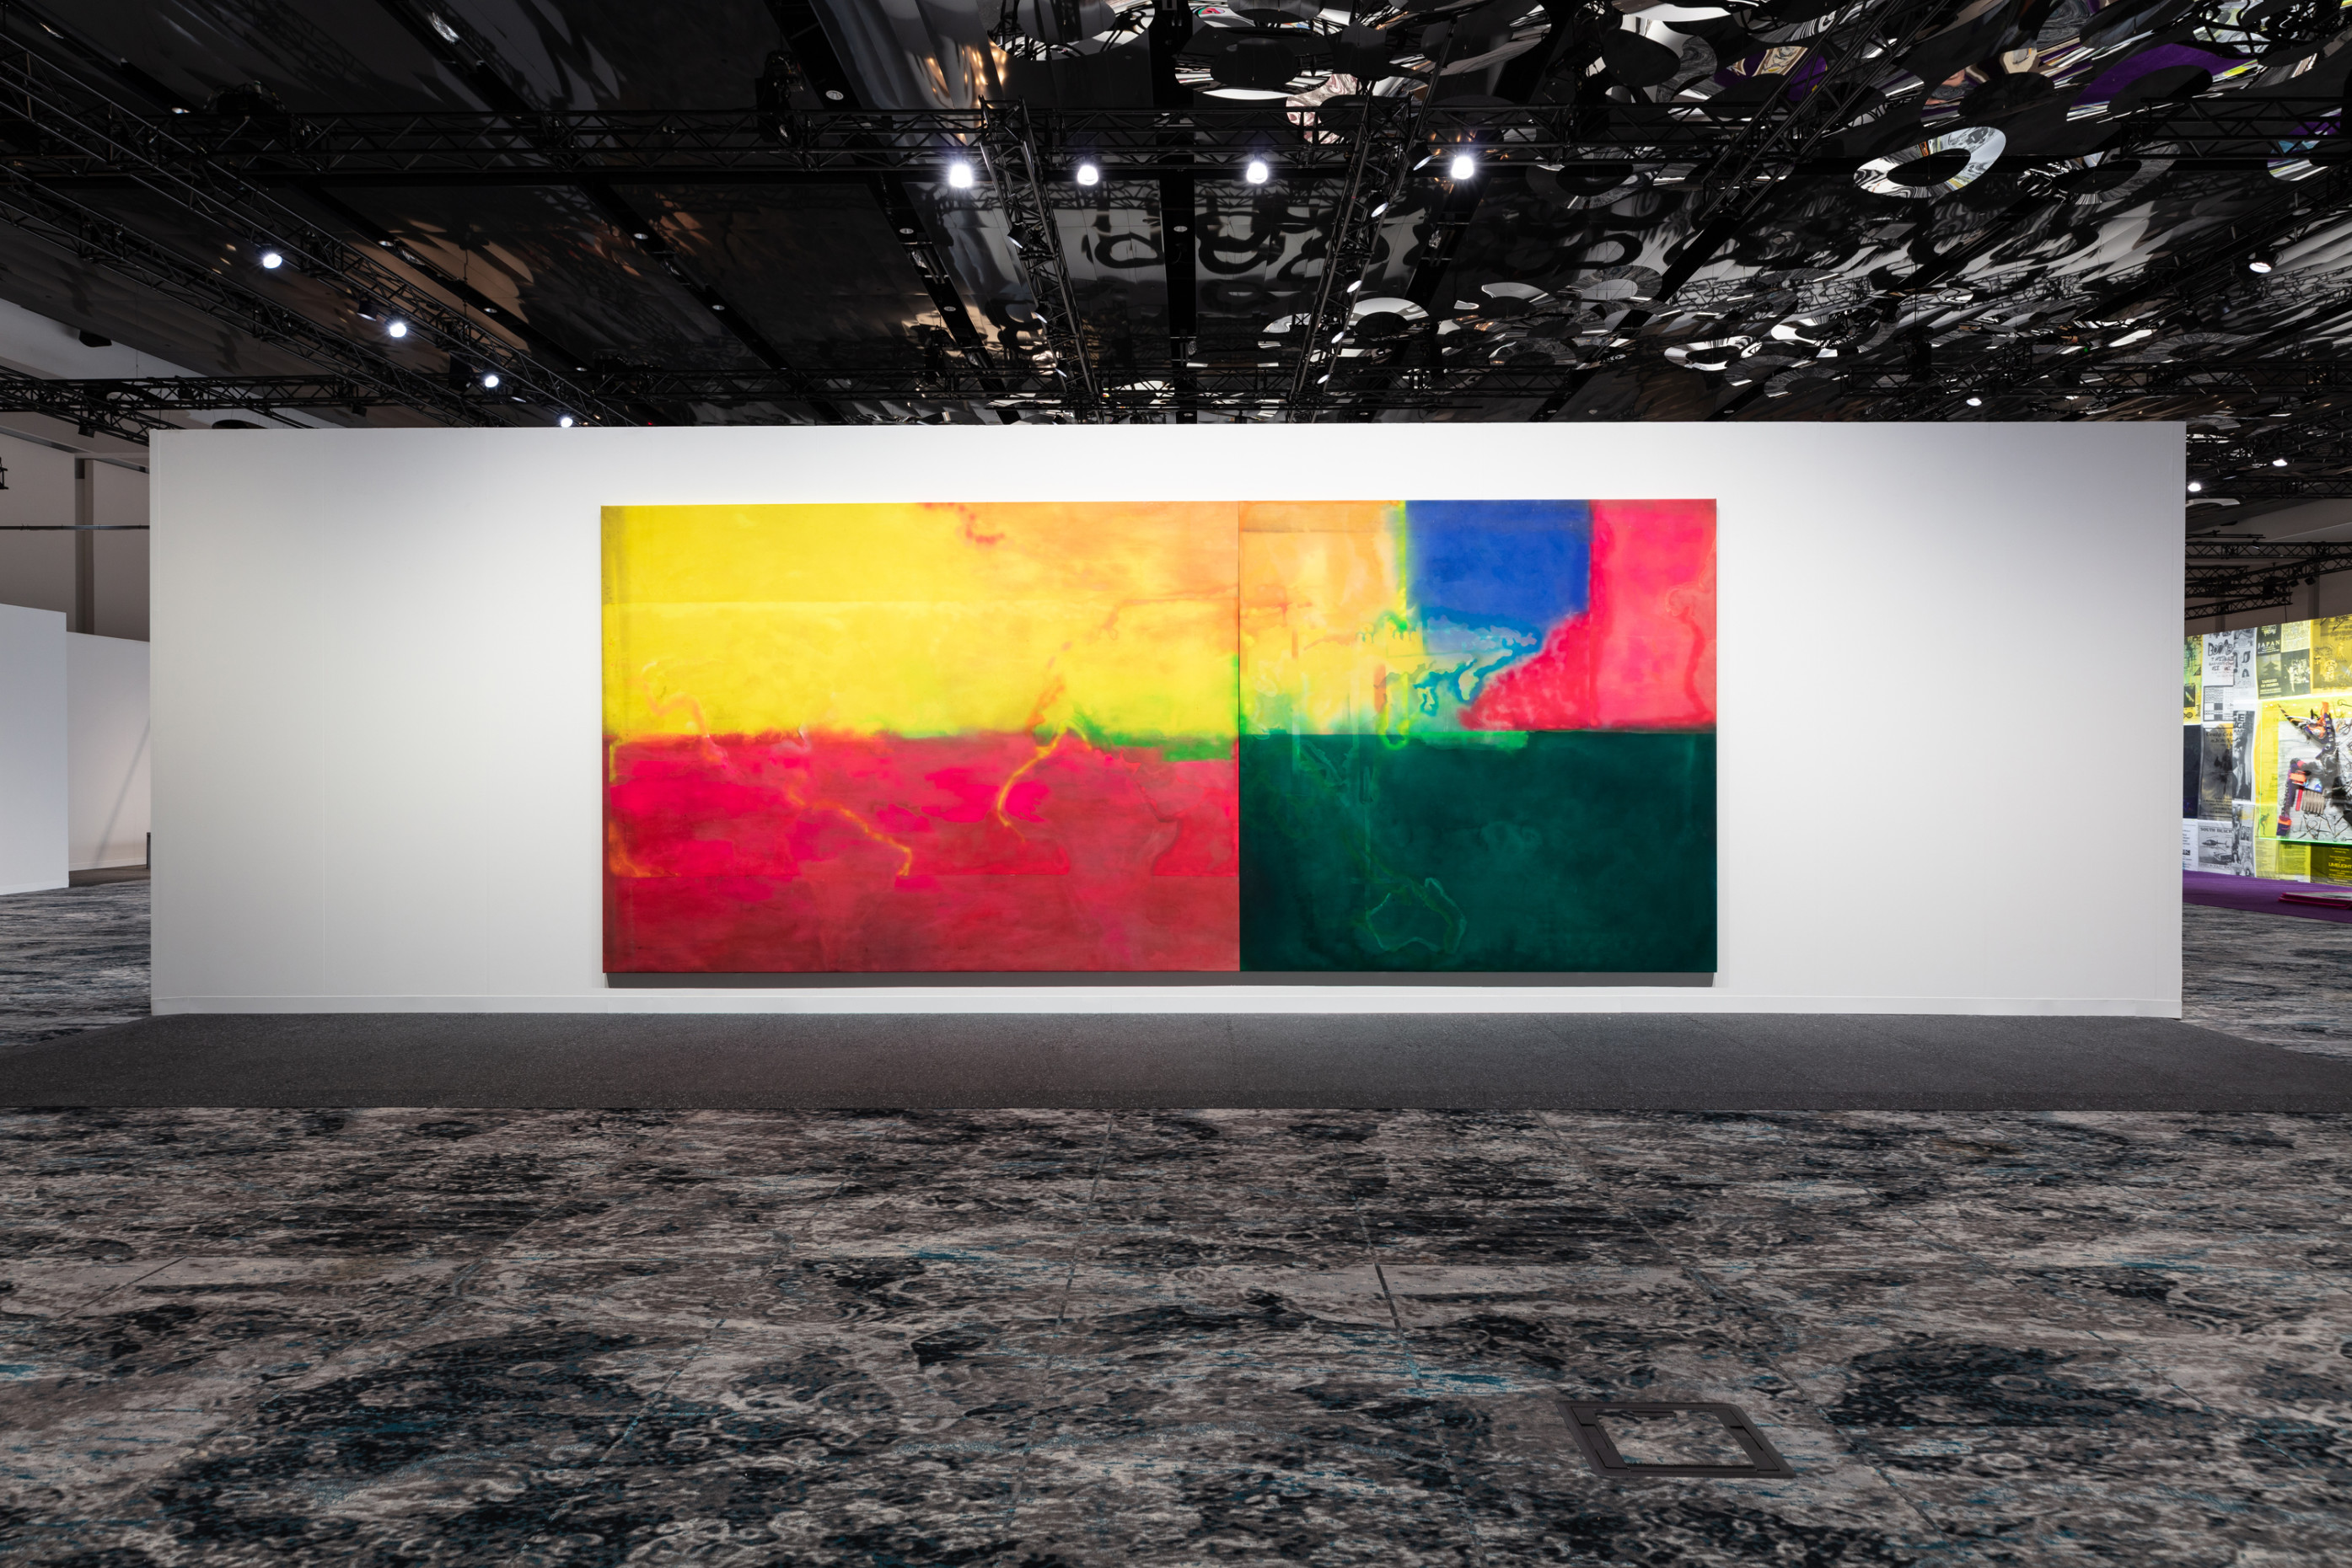 Installation view, Hales Gallery at Art Basel Miami Beach | Meridians, 4 - 8 December 2019